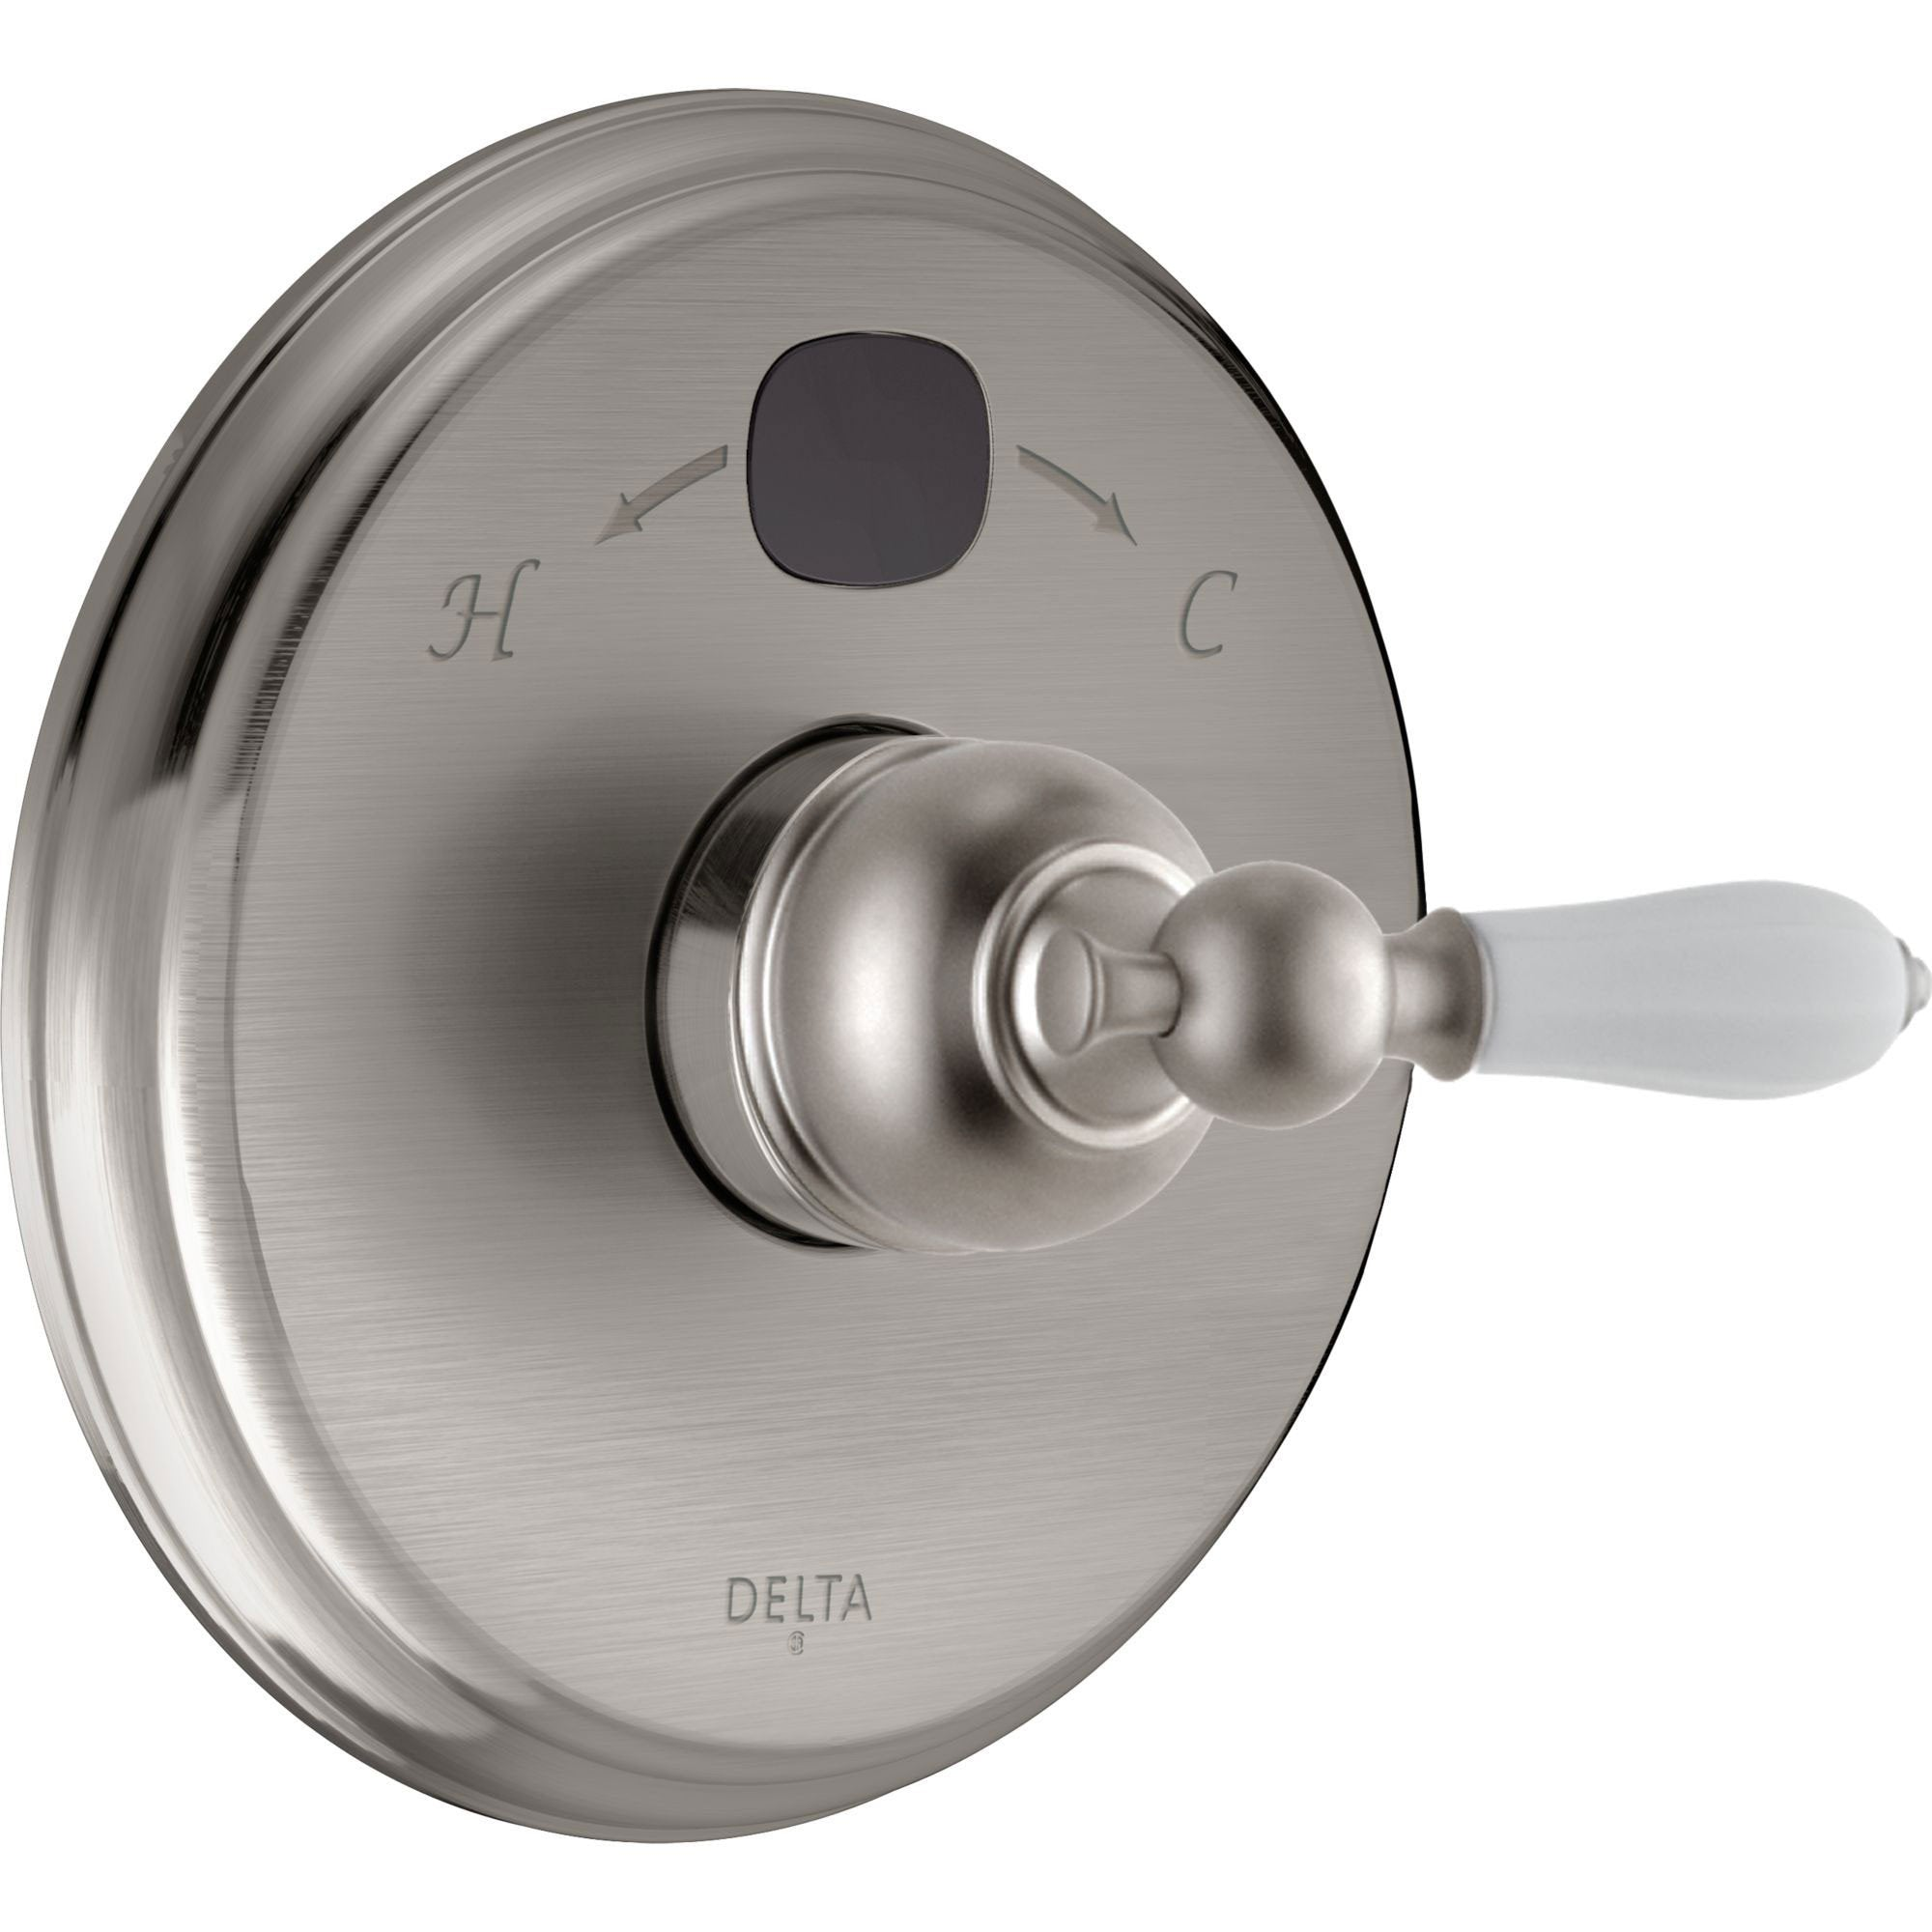 Delta Traditional 14 Series Temp2O Stainless Steel Finish Pressure Balanced Shower Faucet Control with Digital Display INCLUDES Rough-in Valve and White Porcelain Lever Handle D1272V